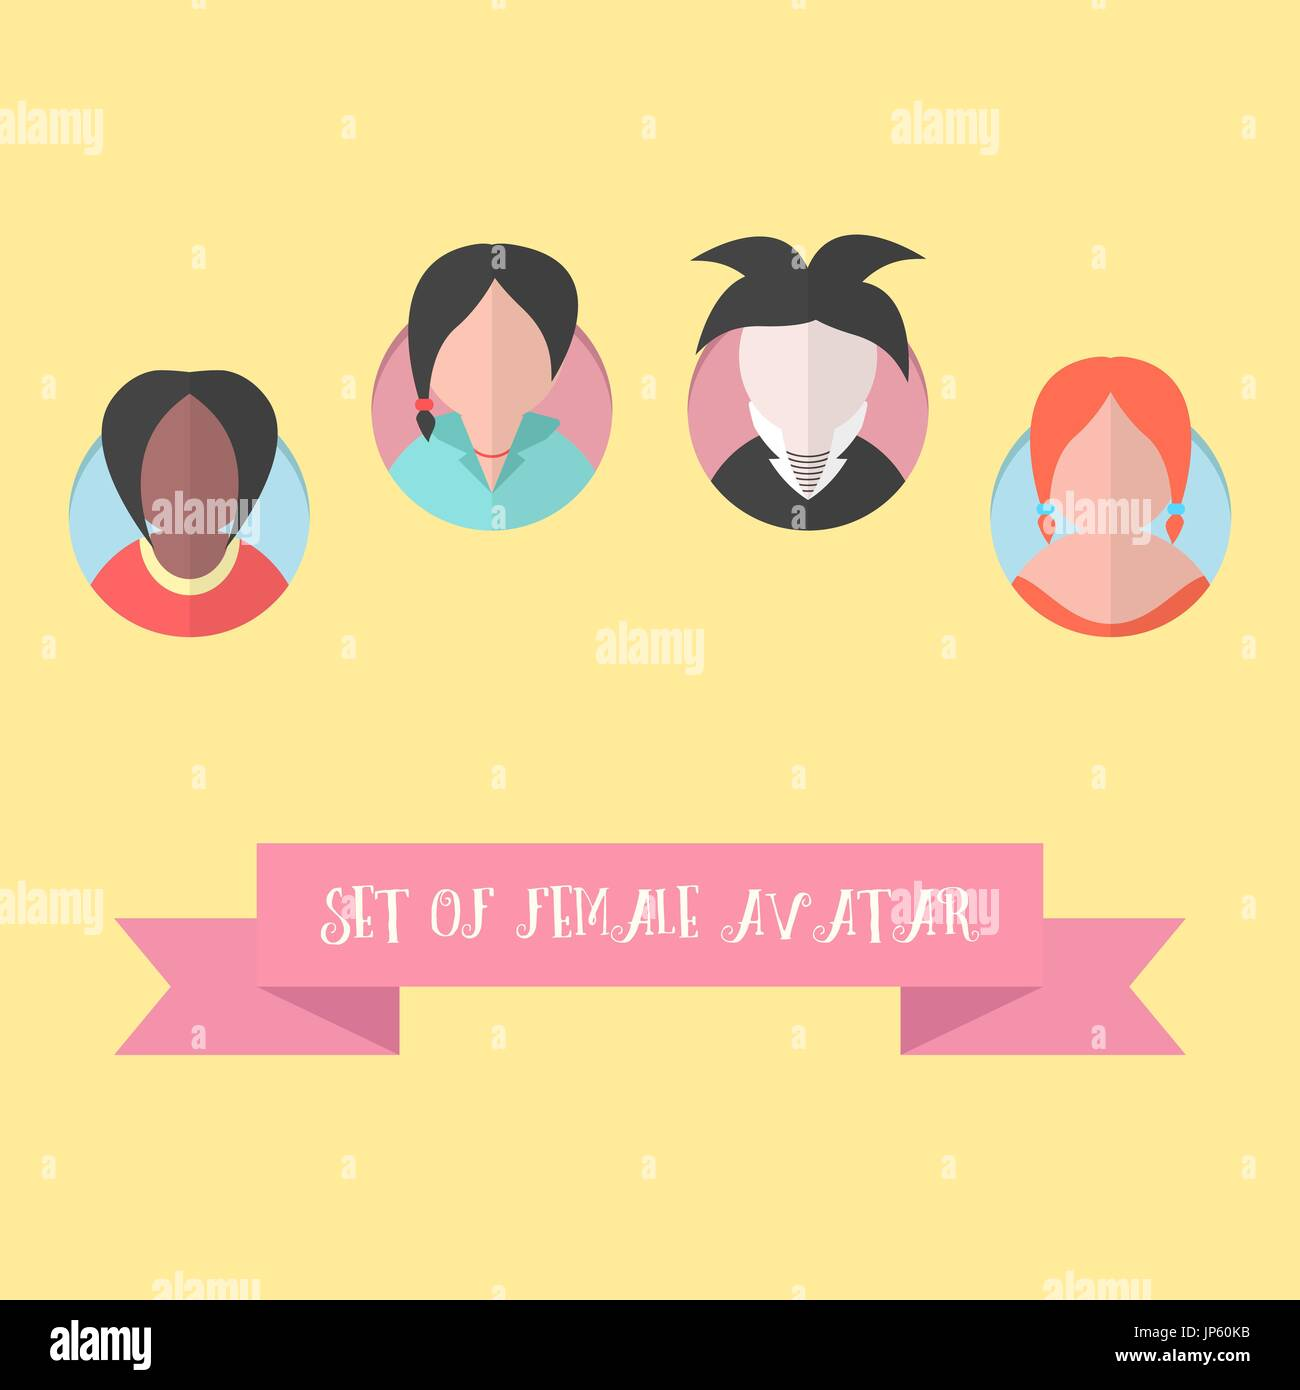 women avatar set with pink ribbon - Stock Vector